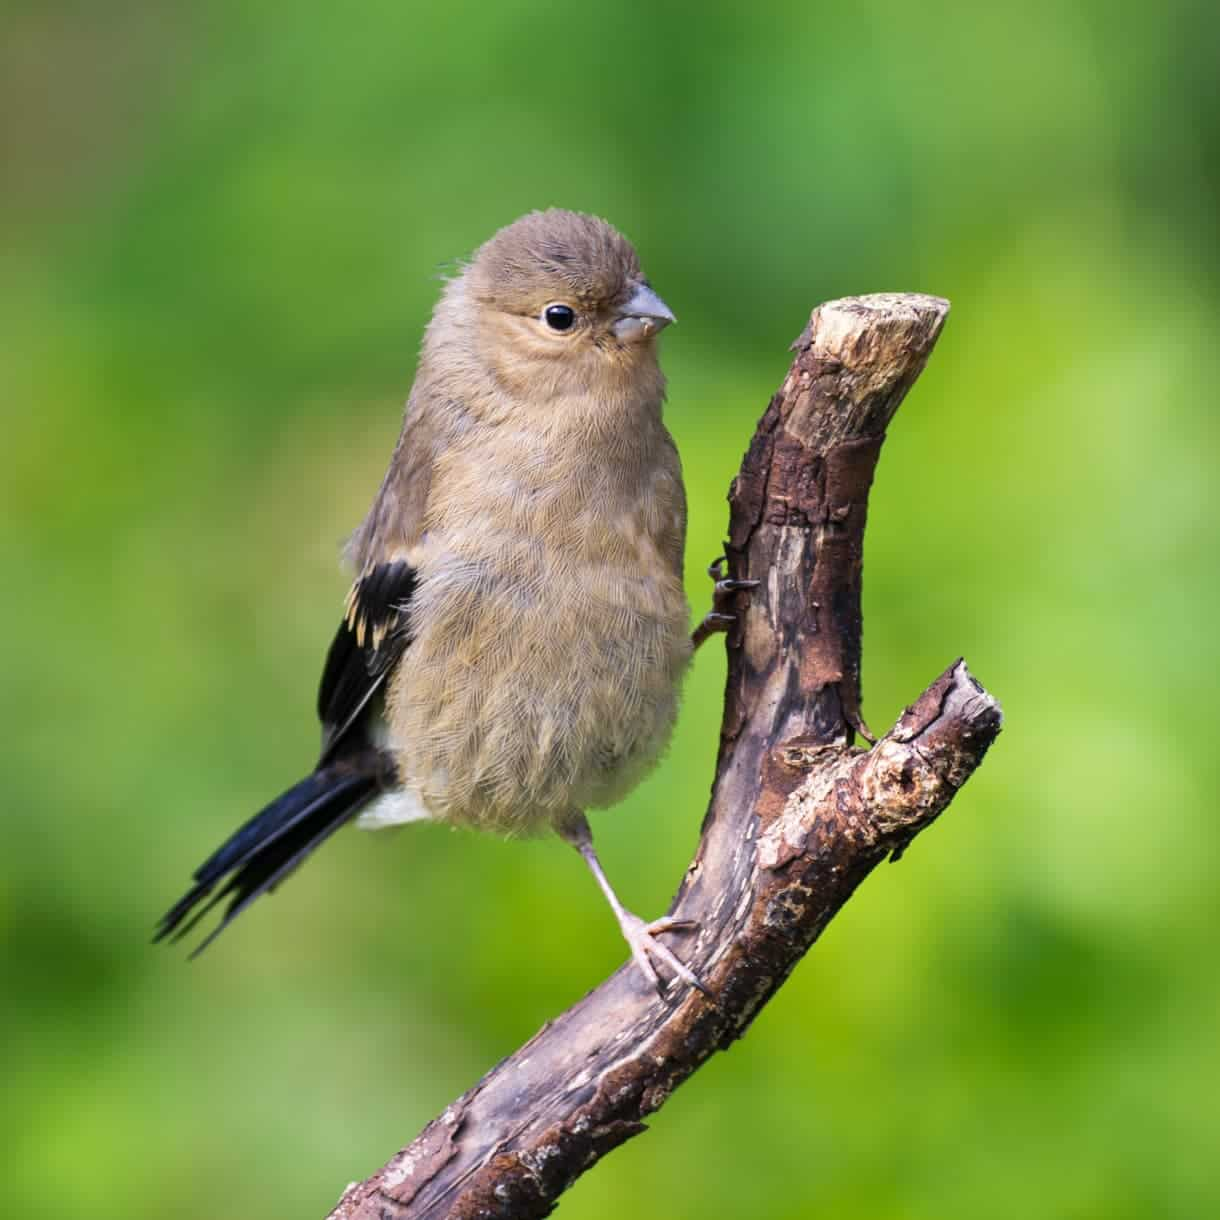 From nestling to fledgling - GardenBird